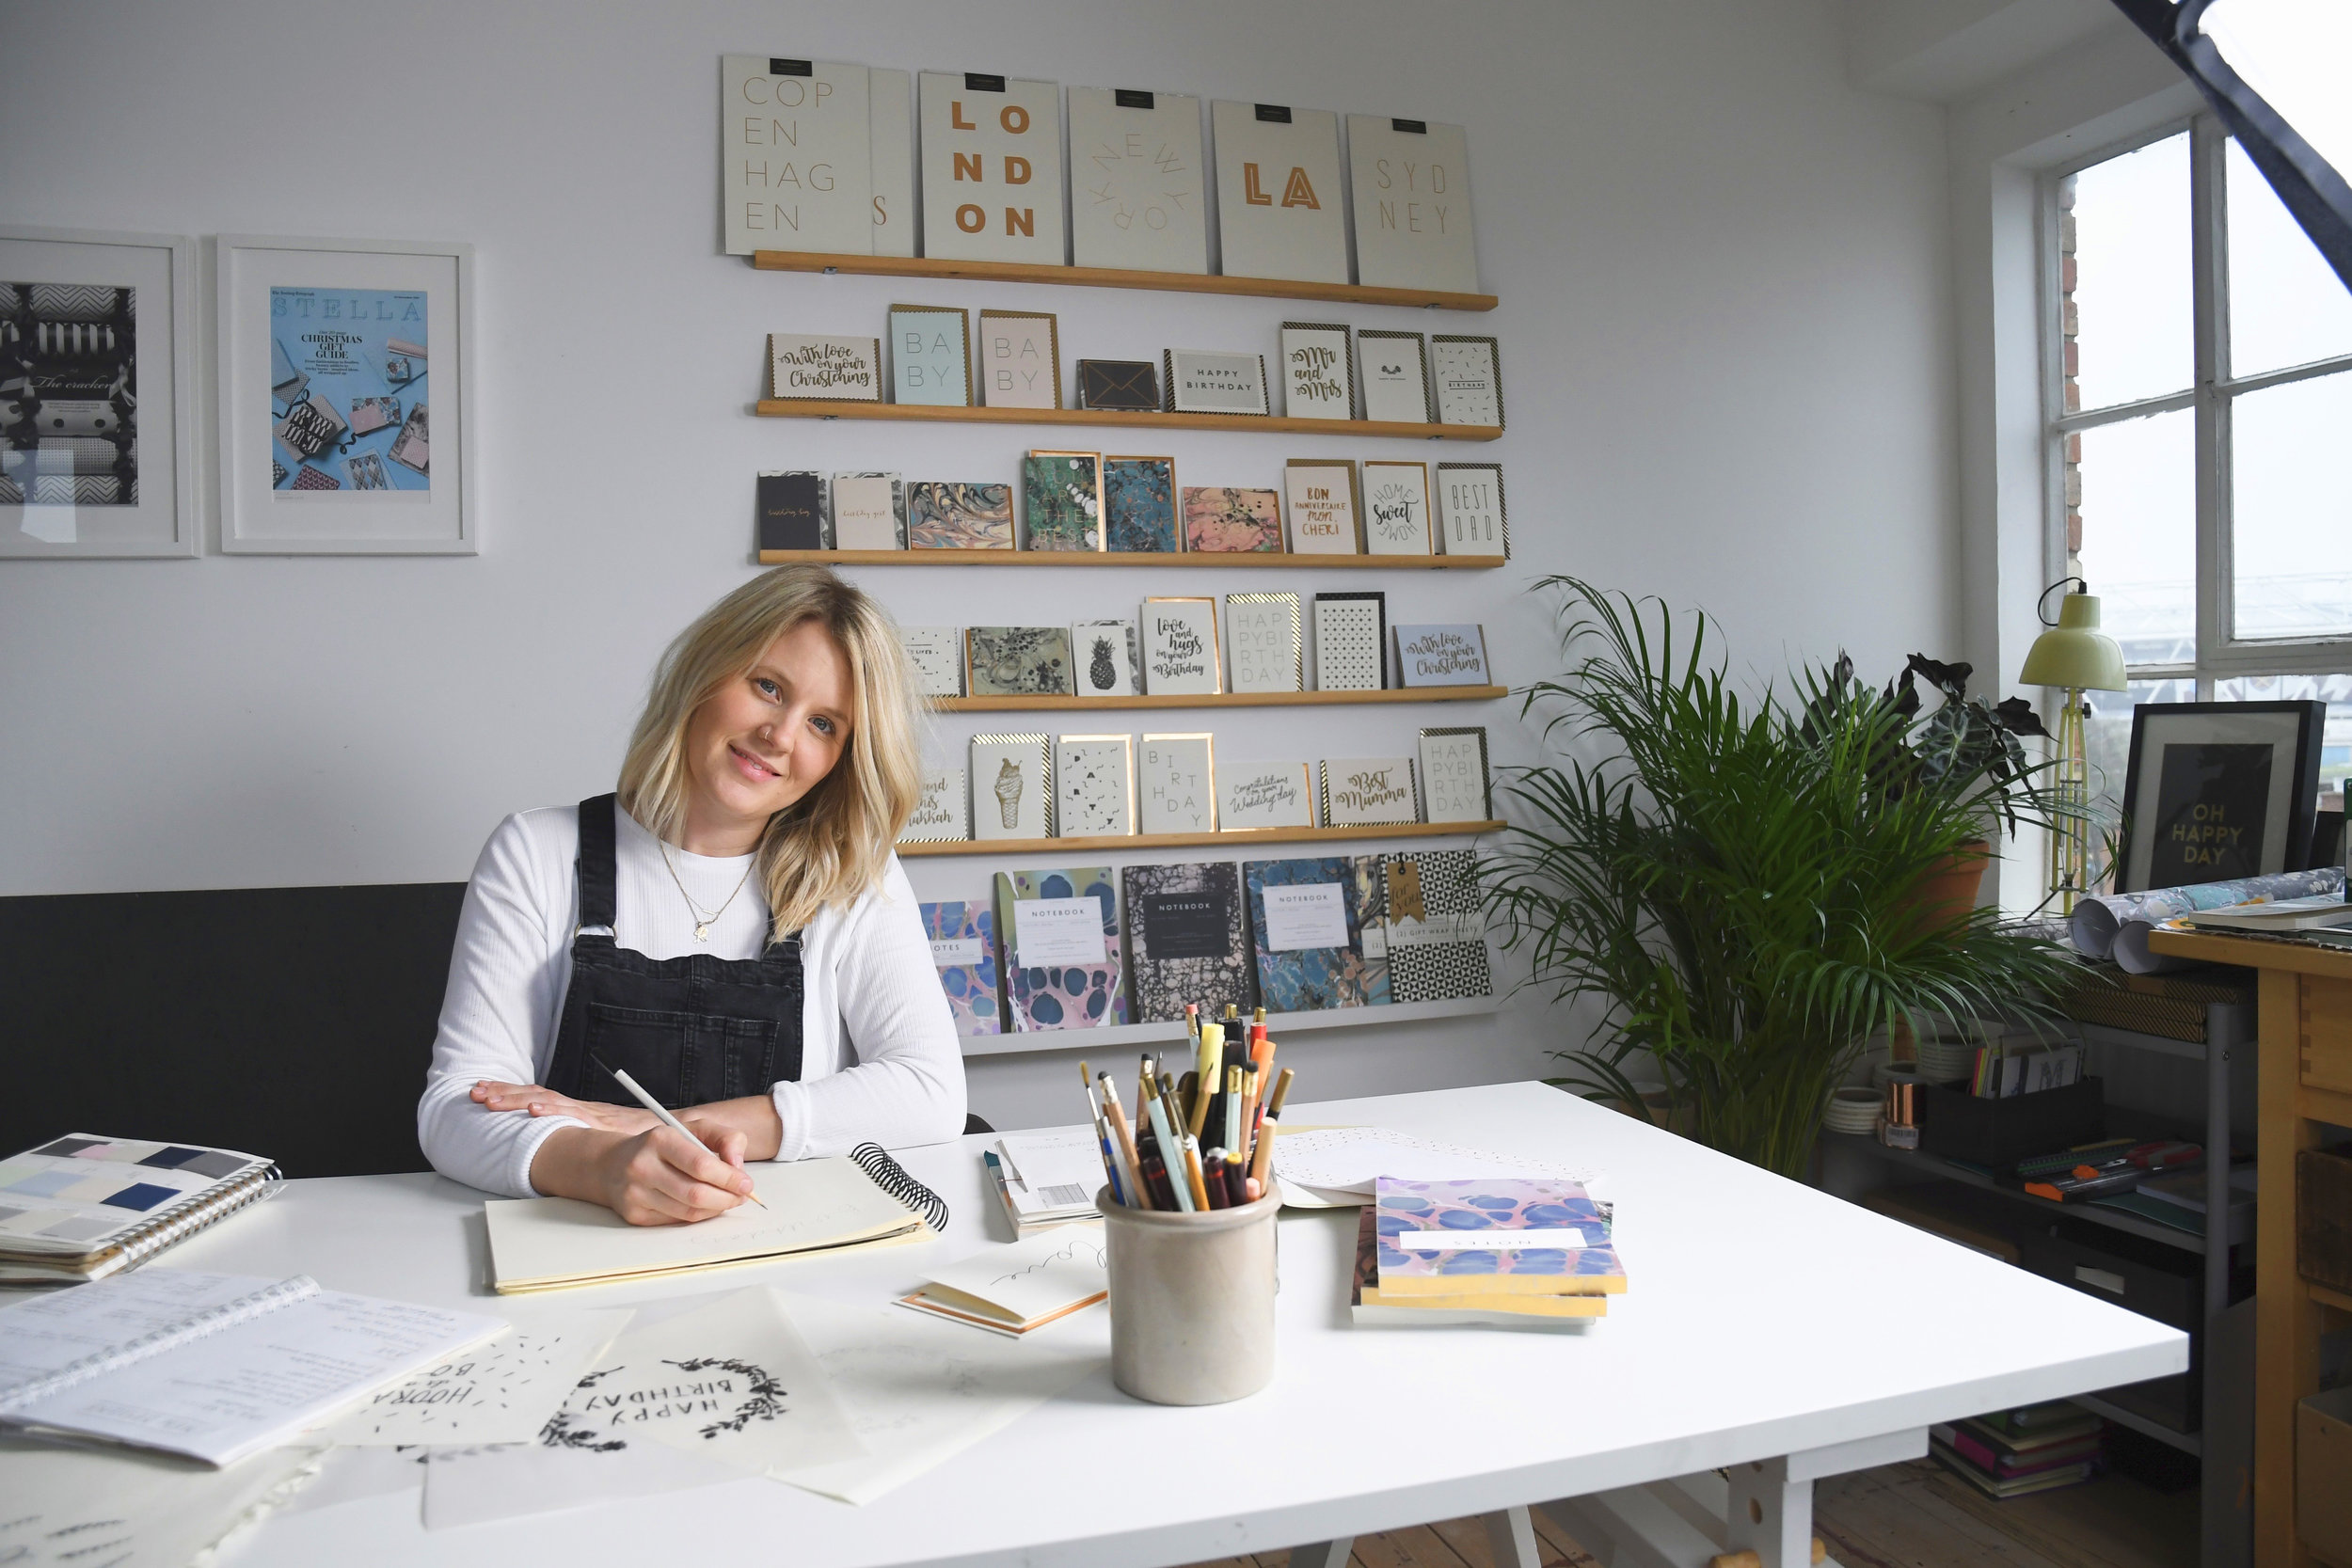 Katie Leamon in her London England stationery studio